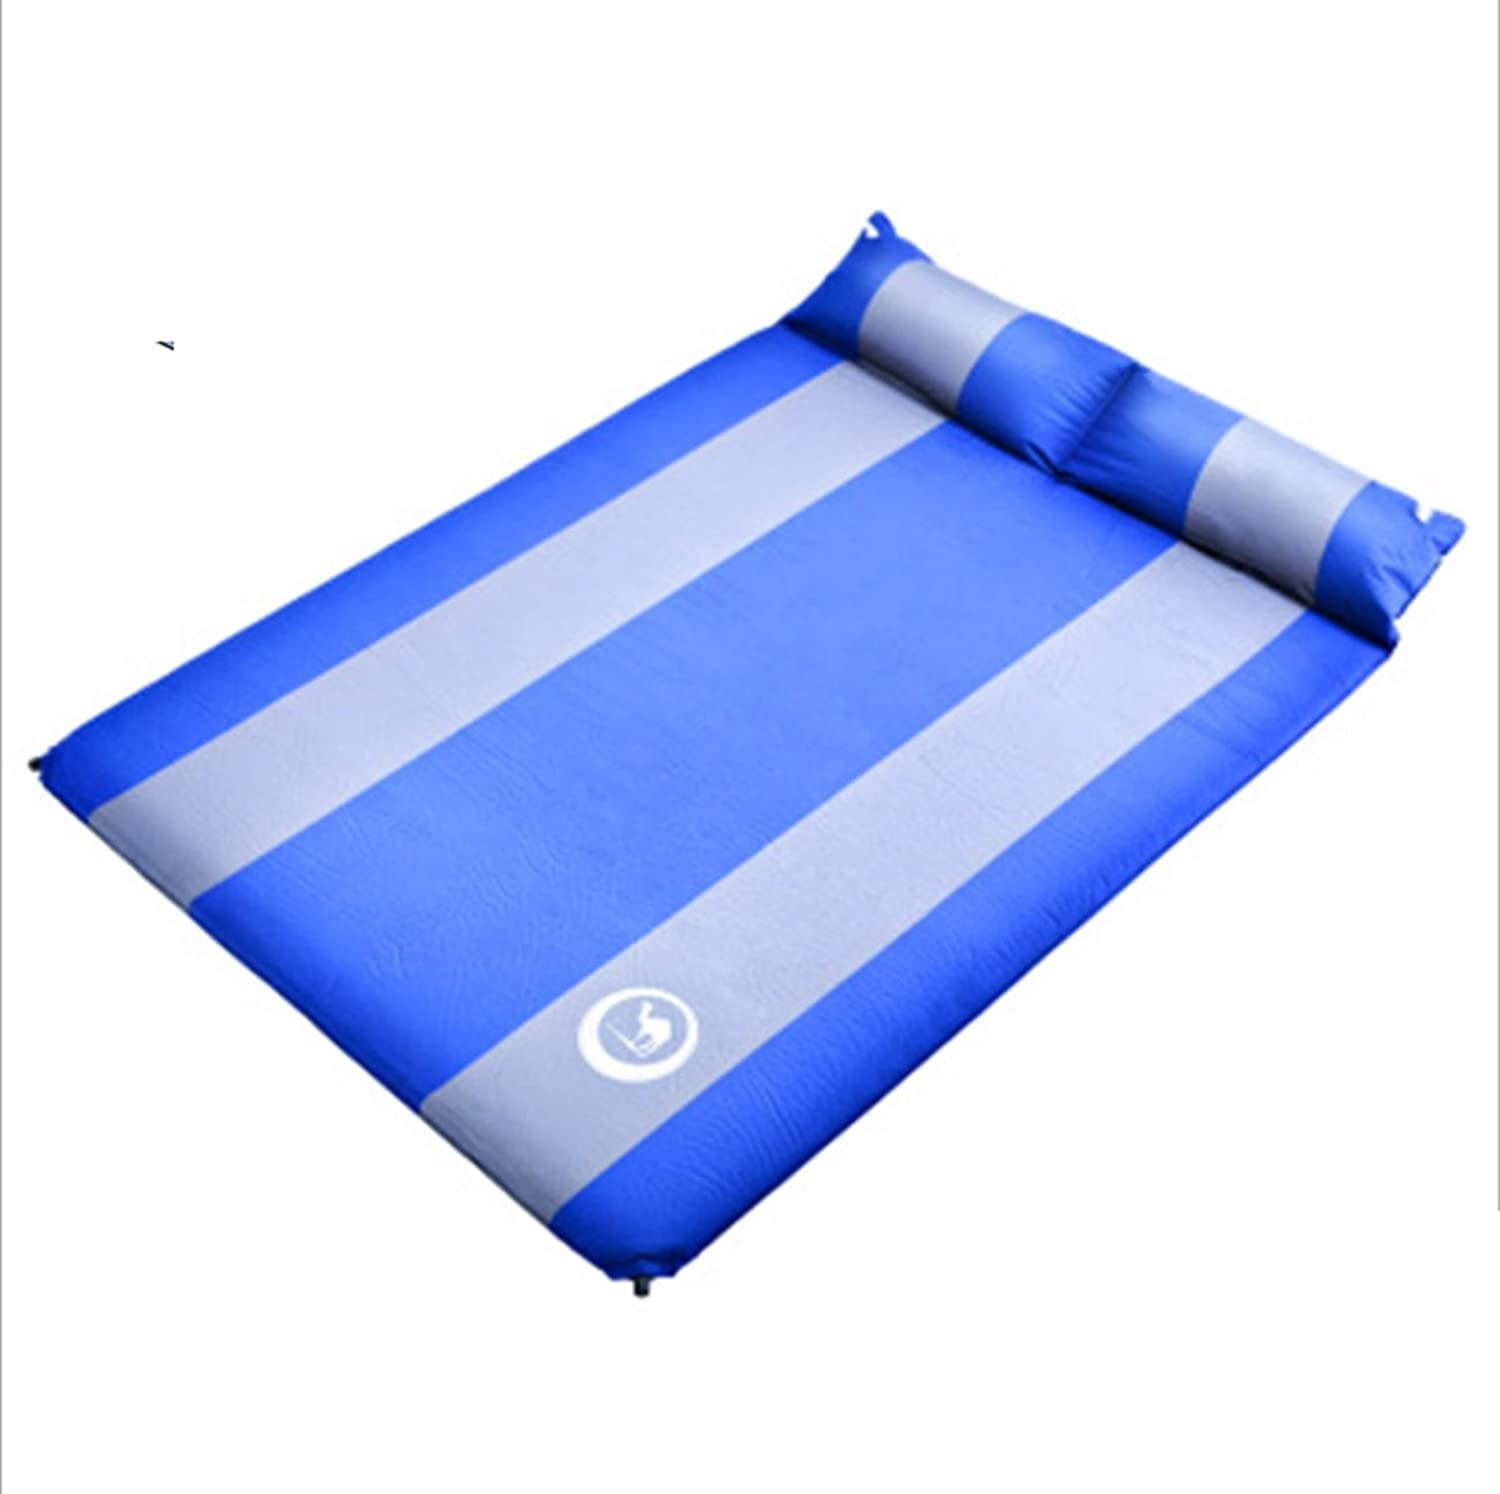 Inflatable Sleeping Mat 3.5cm Thick Water&Moisture Proof Camping Mattress with Pillow and Repair Patch for Camping,Hiking,Travelling,Backpacking